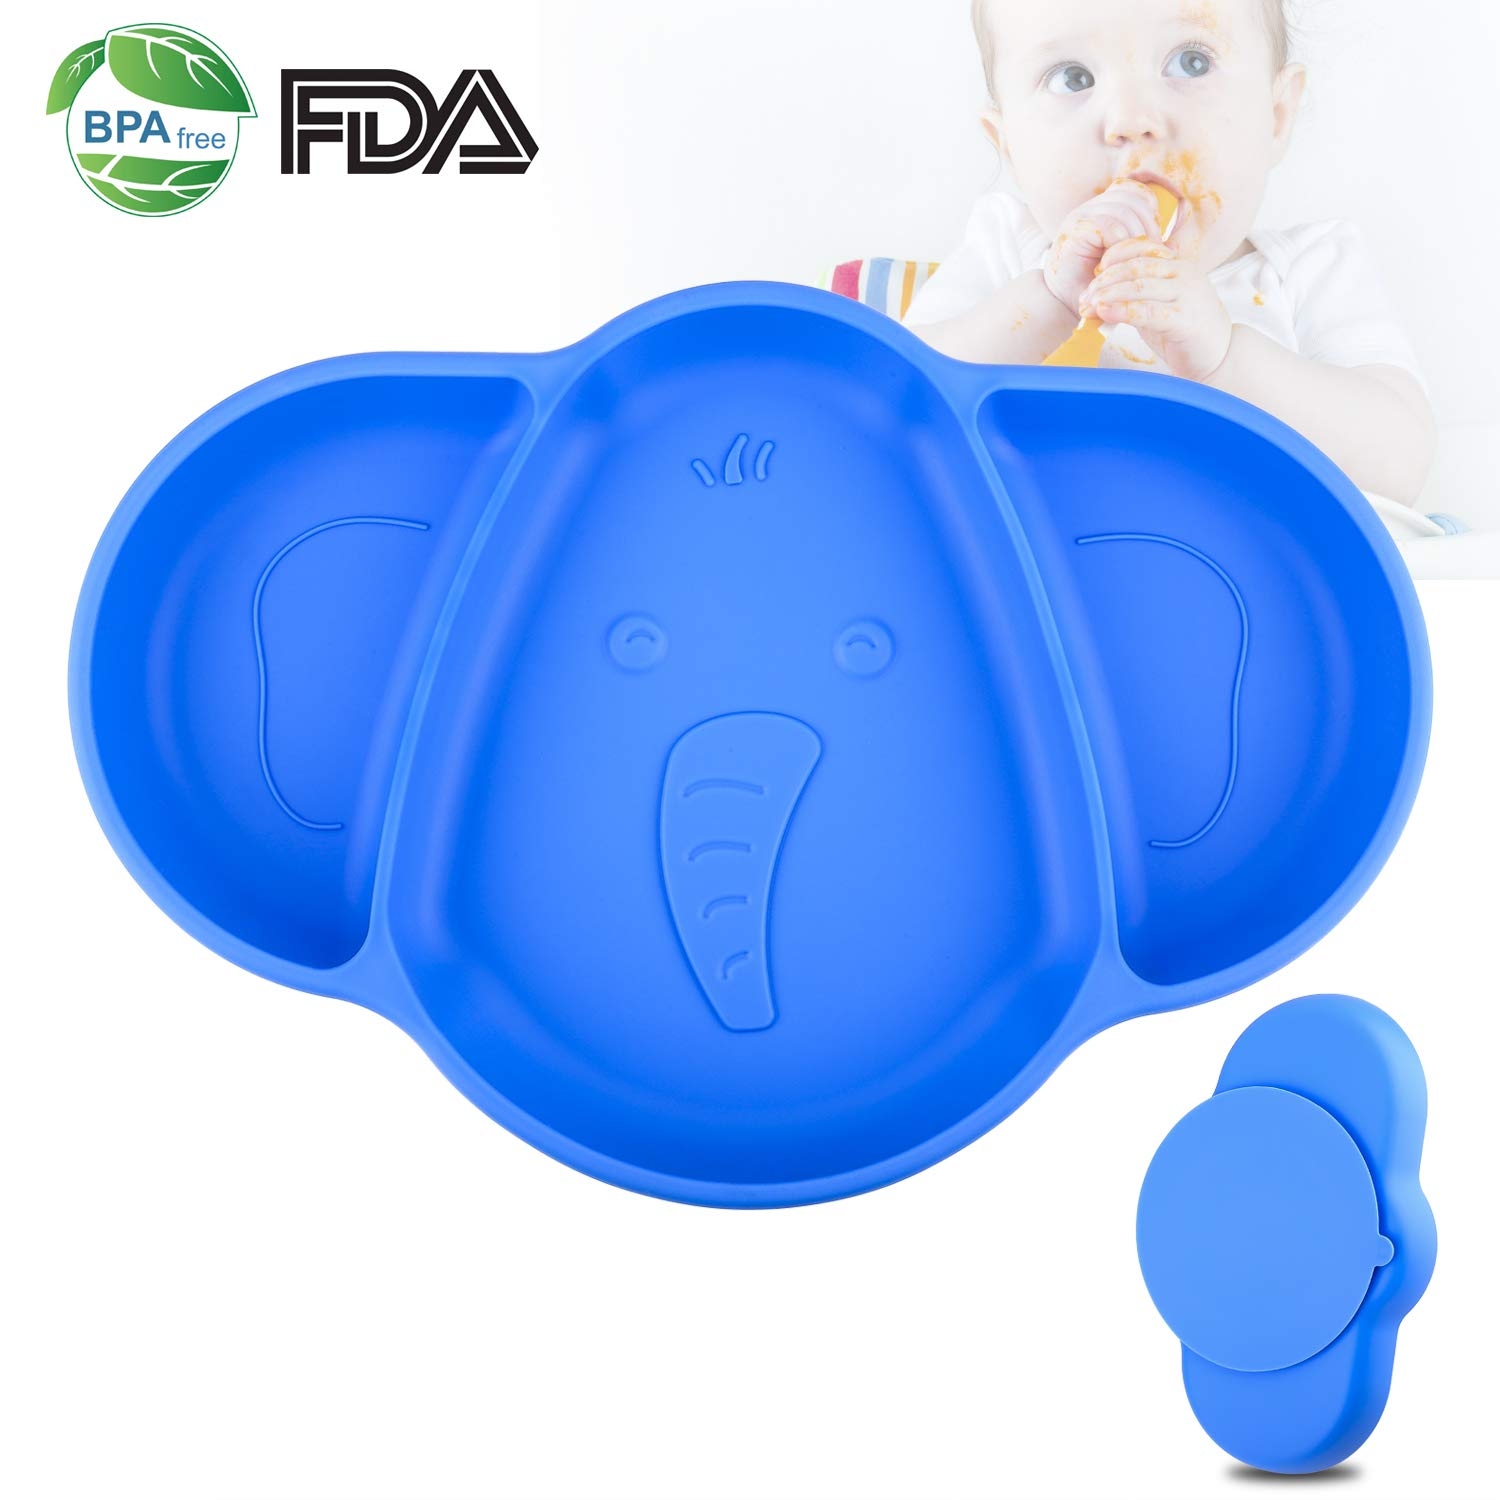 Baby Plates,Suction Plates for Toddlers,Silicone Baby Placemat With Lid for Kids Child Self Feeding,Section Baby Feeding Bowl With Suction For Baby Led Weaning,BPA Free autsmile